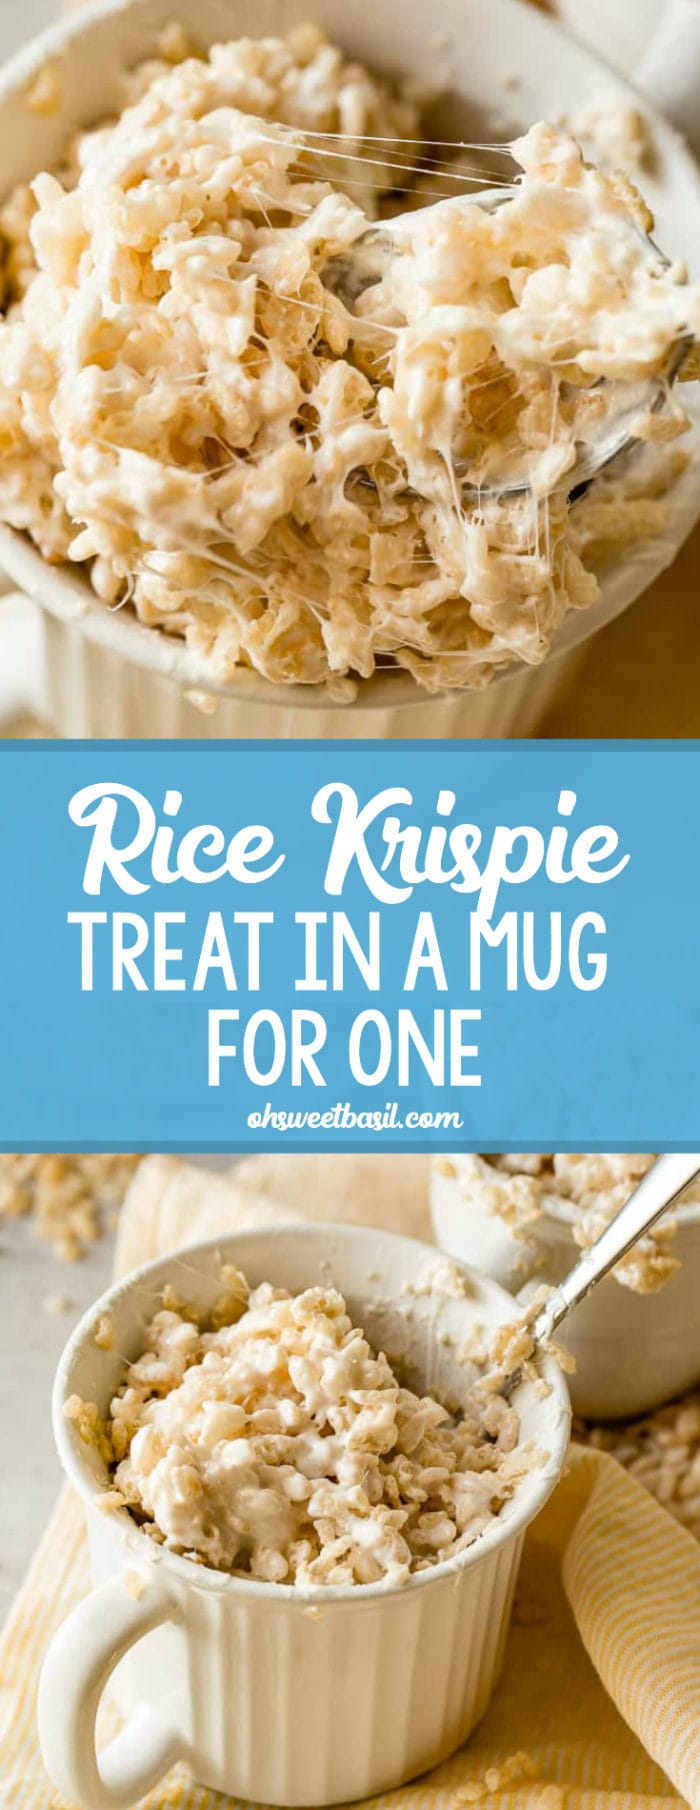 A photo of gooey rice krispie treat in a white mug with someone taking a spoonful out.